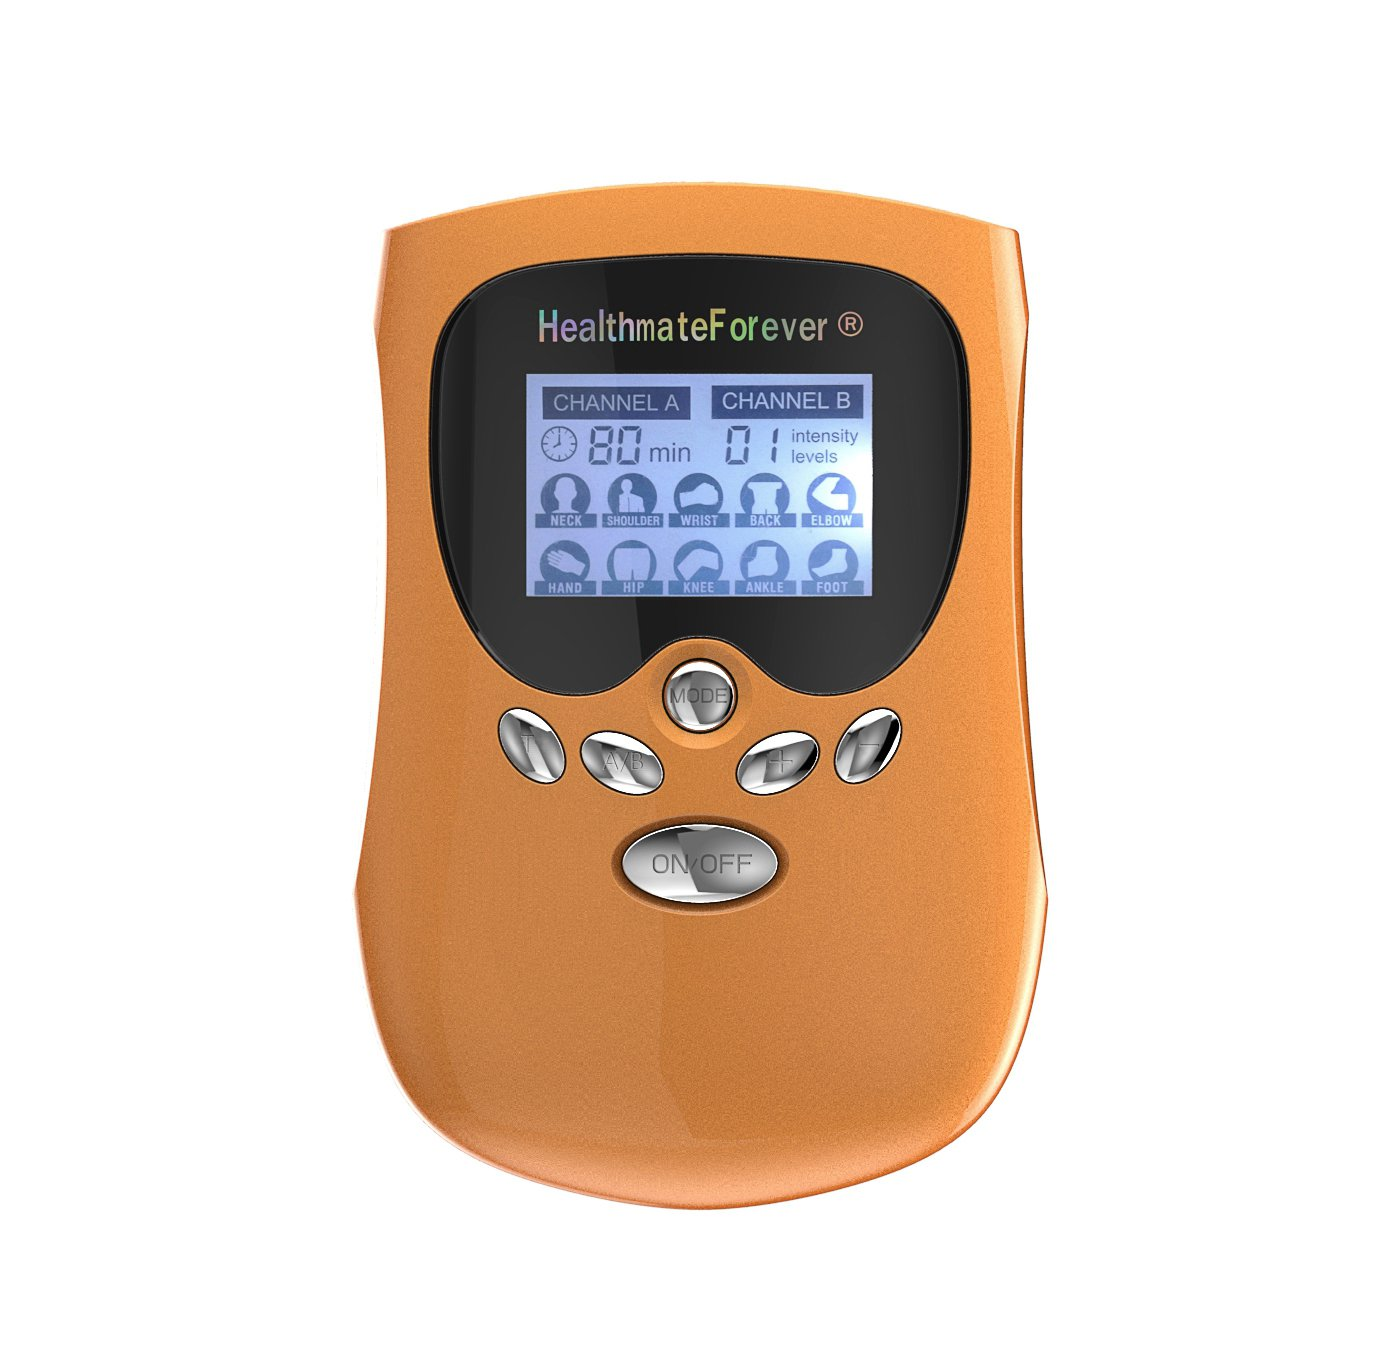 PM10AB HealthmateForever TENS Unit Electrical Muscle Stimulator Orange + 10 Pairs of Pads